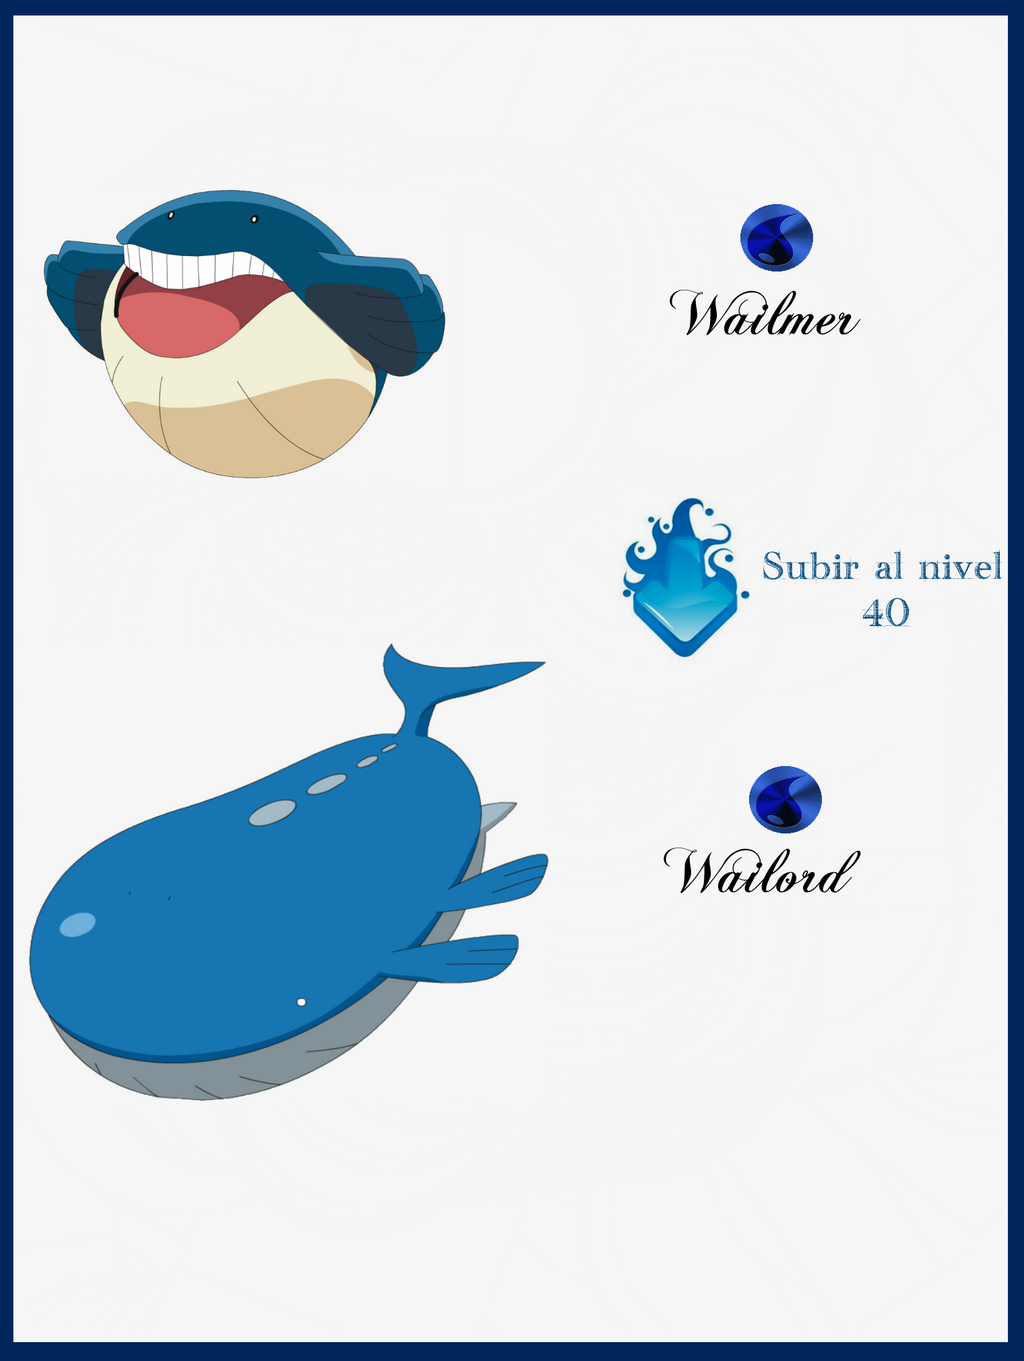 150 Wailmer Evoluciones by Maxconnery on DeviantArt Wailmer Wailord